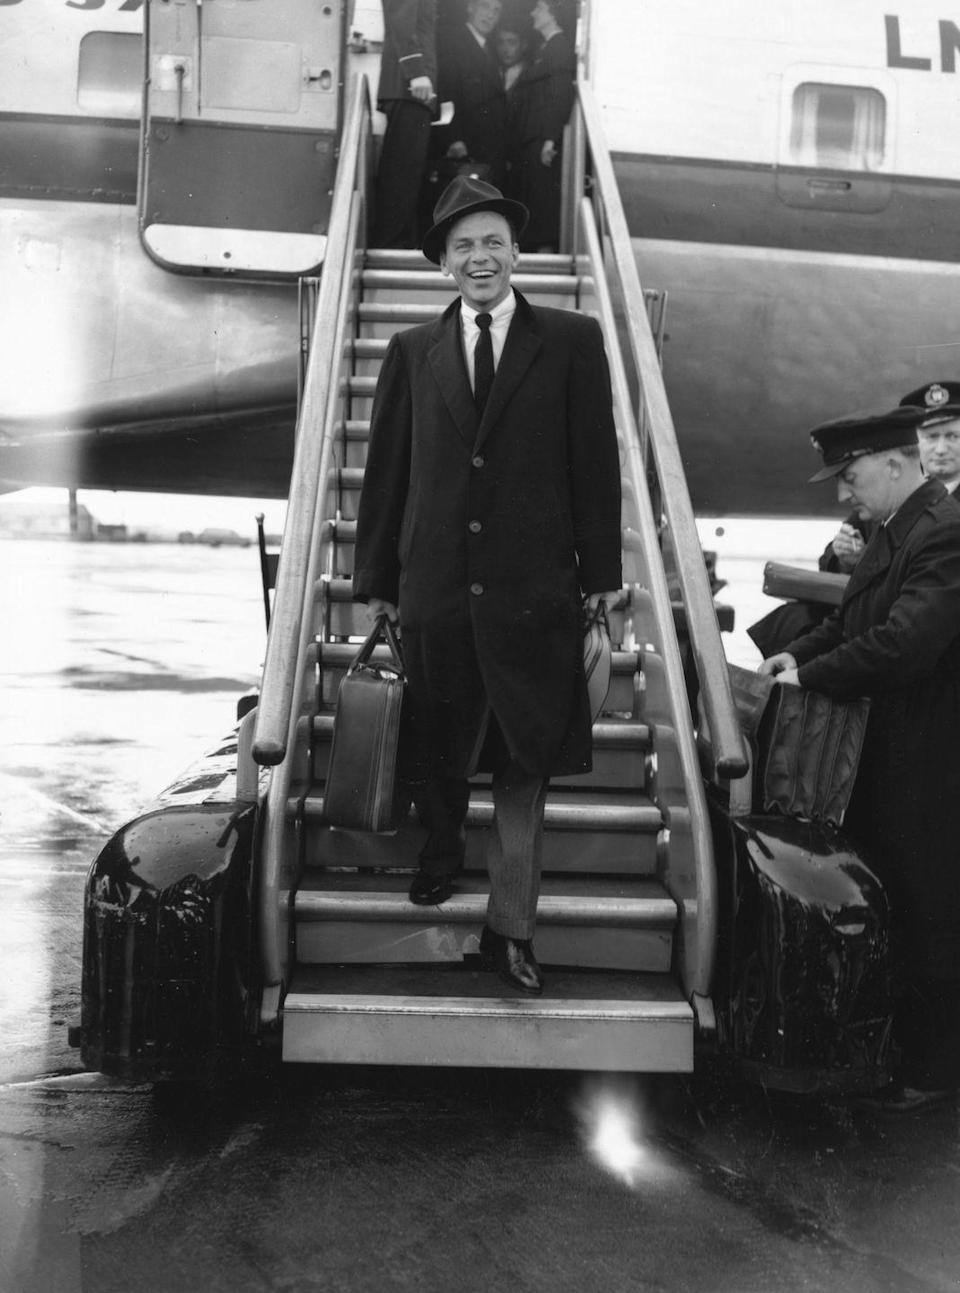 <p>Sinatra was just getting started at the age of 40: He was at the beginning of his major comeback, having released <em>In the Wee Small Hours of the Morning</em>. At the time, he was married to Ava Gardner. </p>